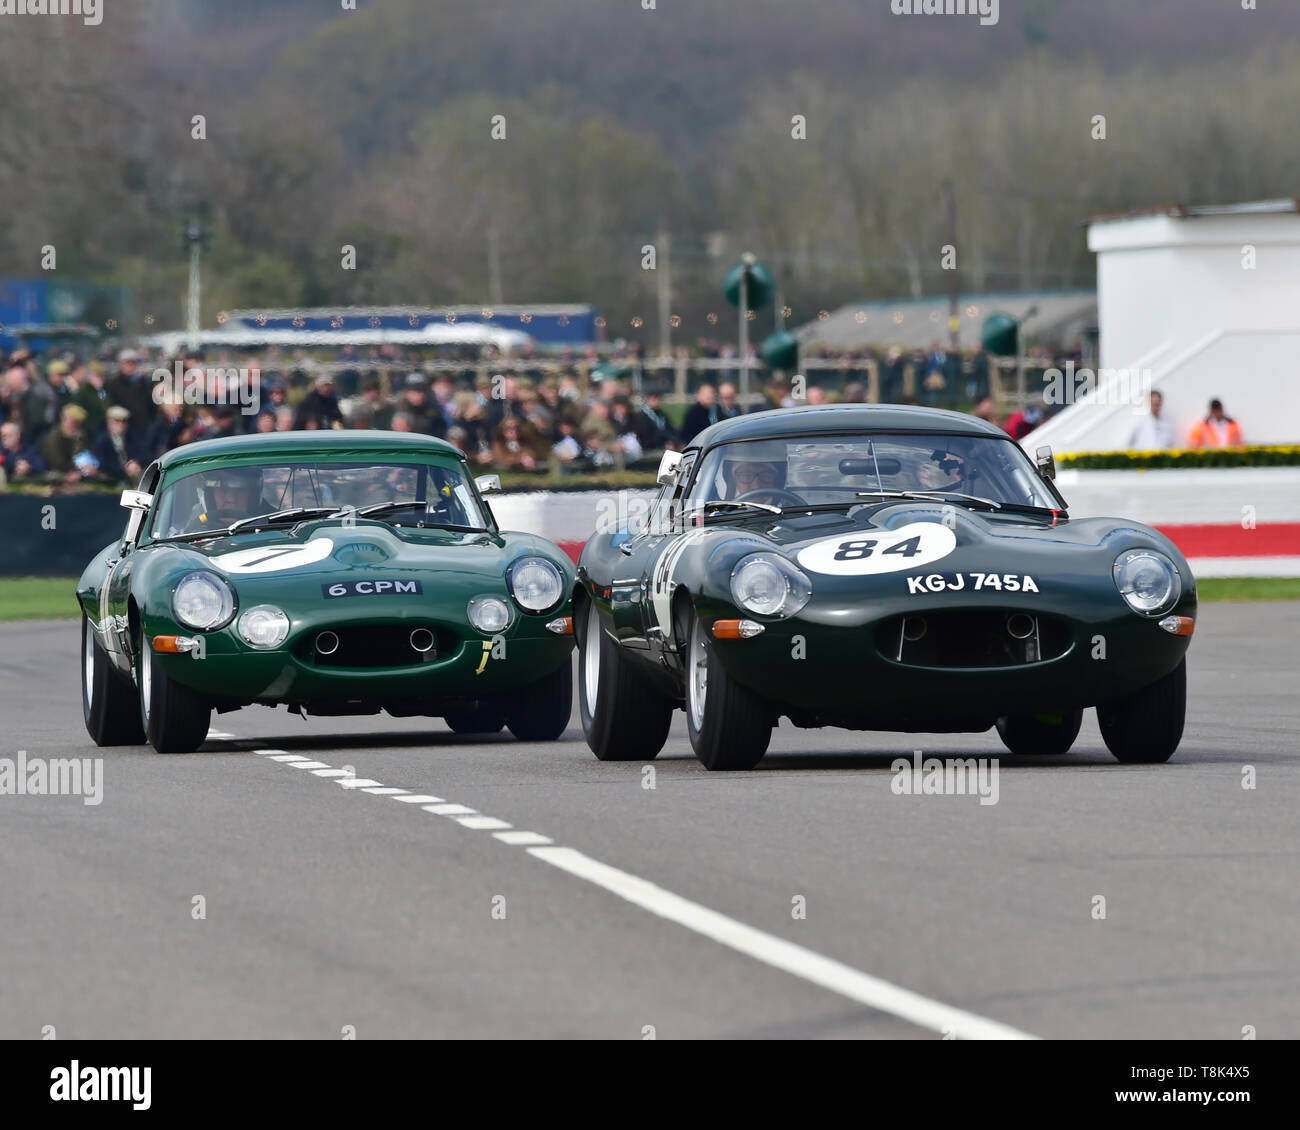 Read Gomm, Andrew Keith-Lucas, Jaguar E-Type lightweight, Michael Costas, John Young, Jaguar E-Type semi-lightweight, Graham Hill Trophy, Closed cockp - Stock Image